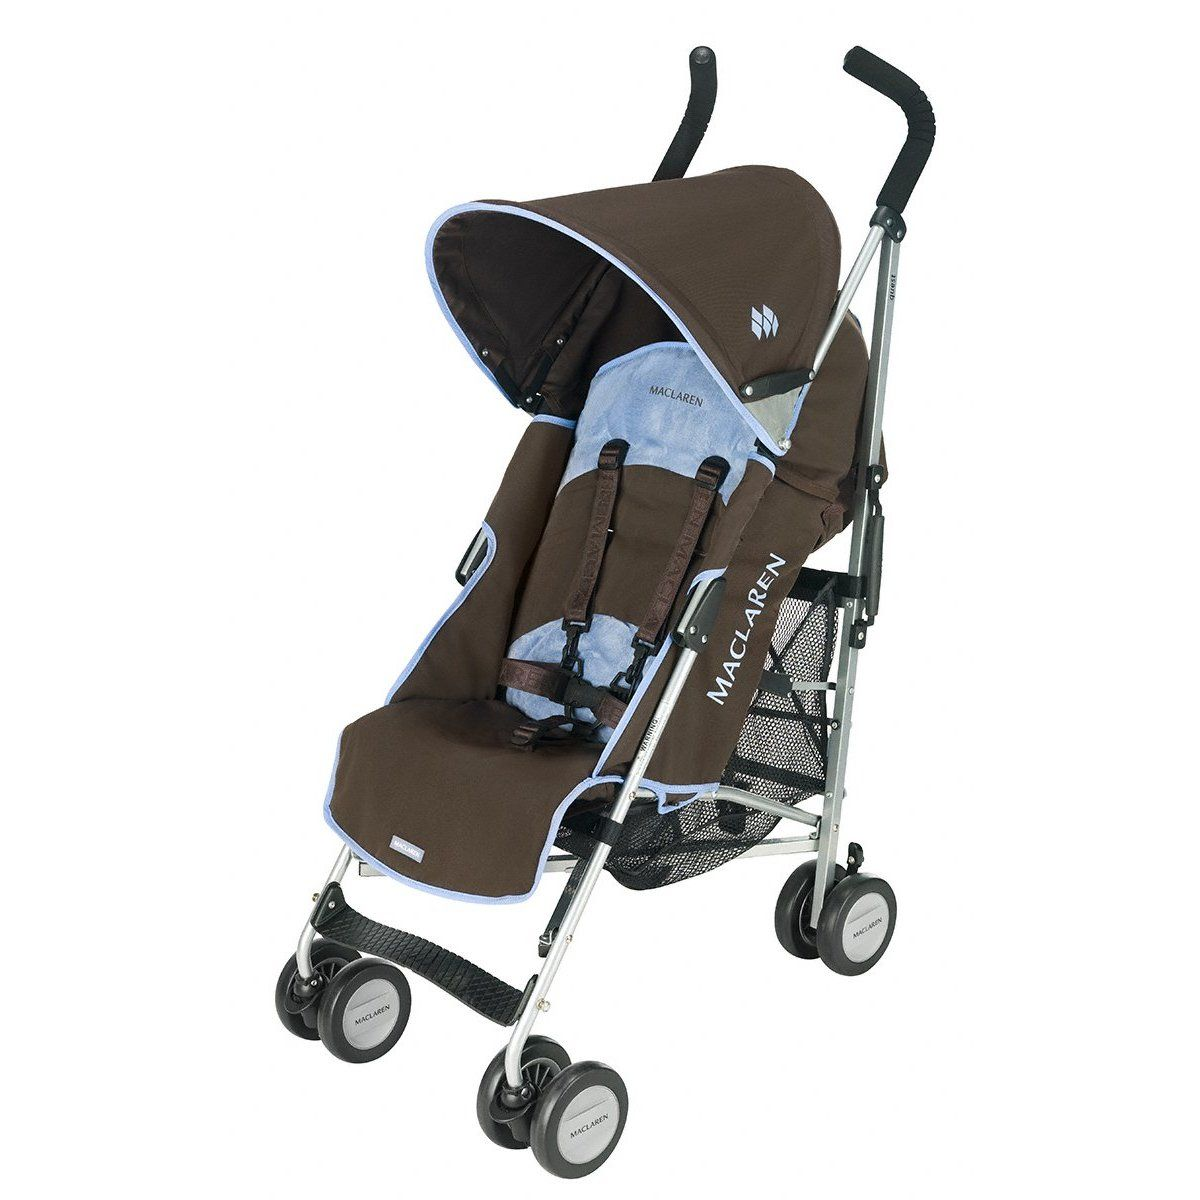 Best Baby Stroller Reviews UK Best baby strollers